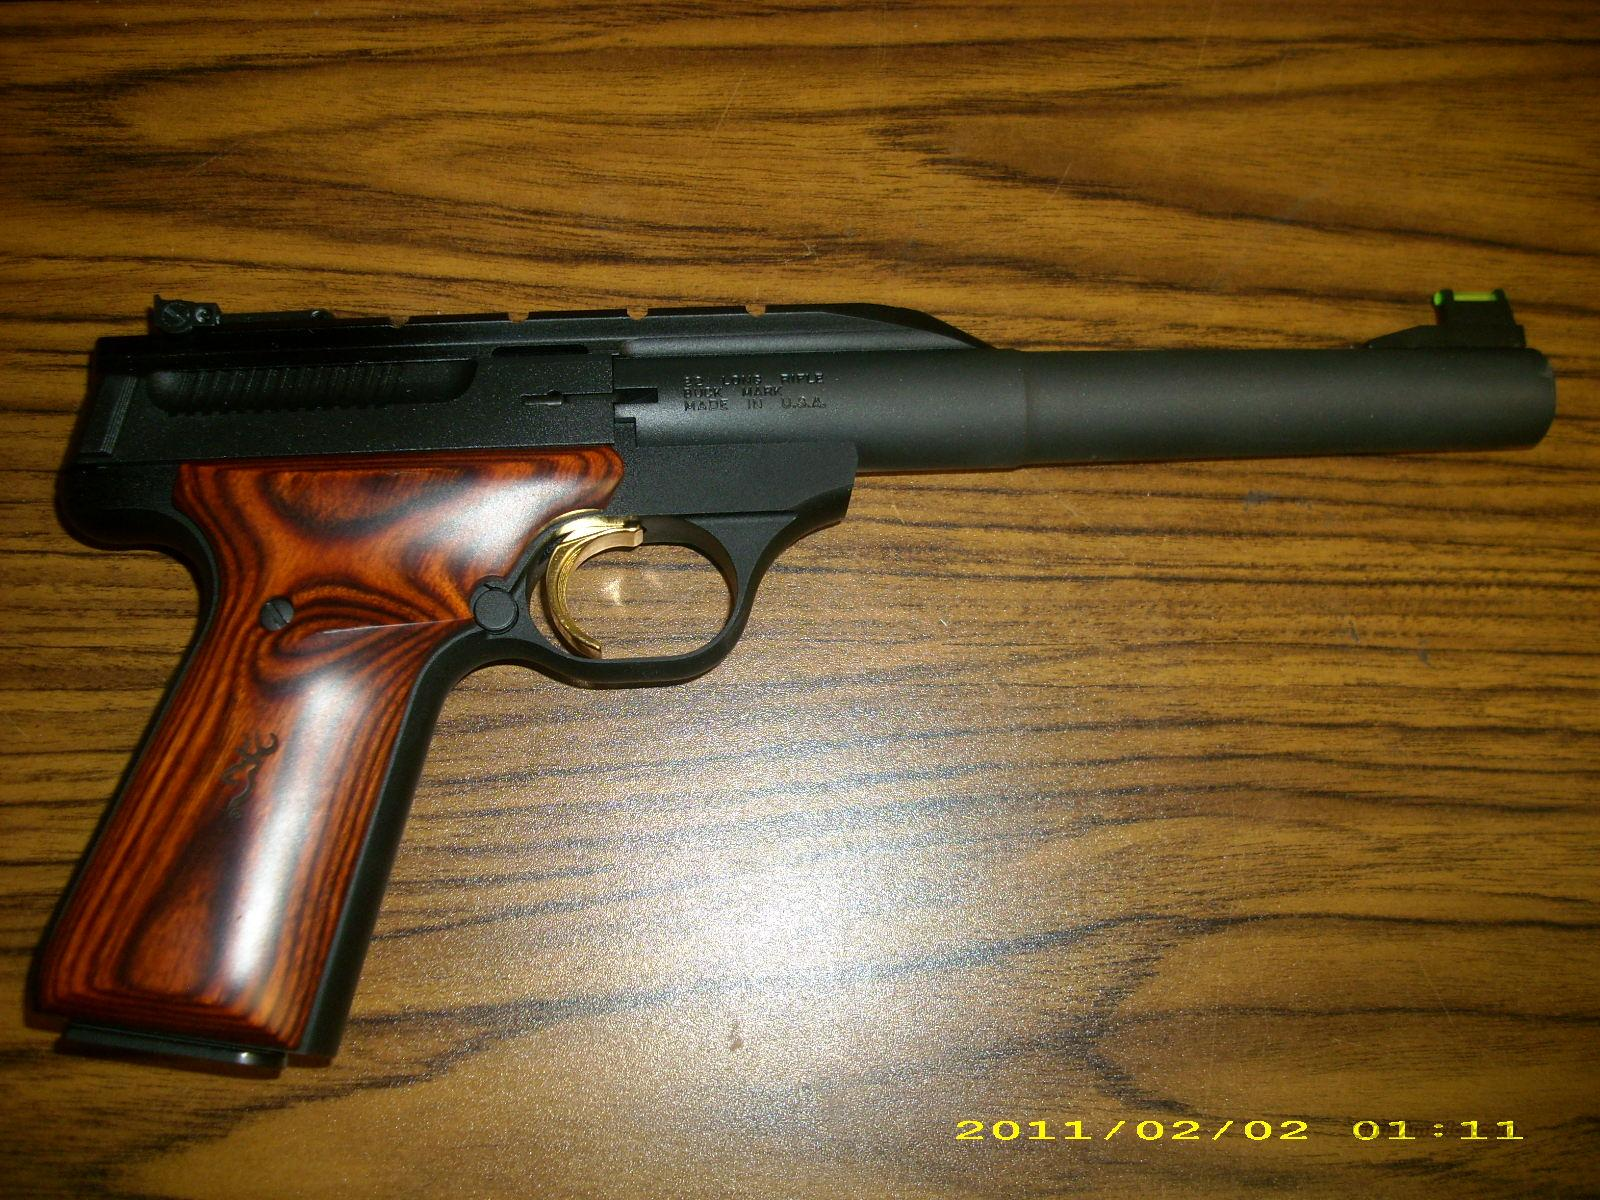 Pa Sales Tax >> Browning Buckmark 22 LR Blued with Wood Grips for sale